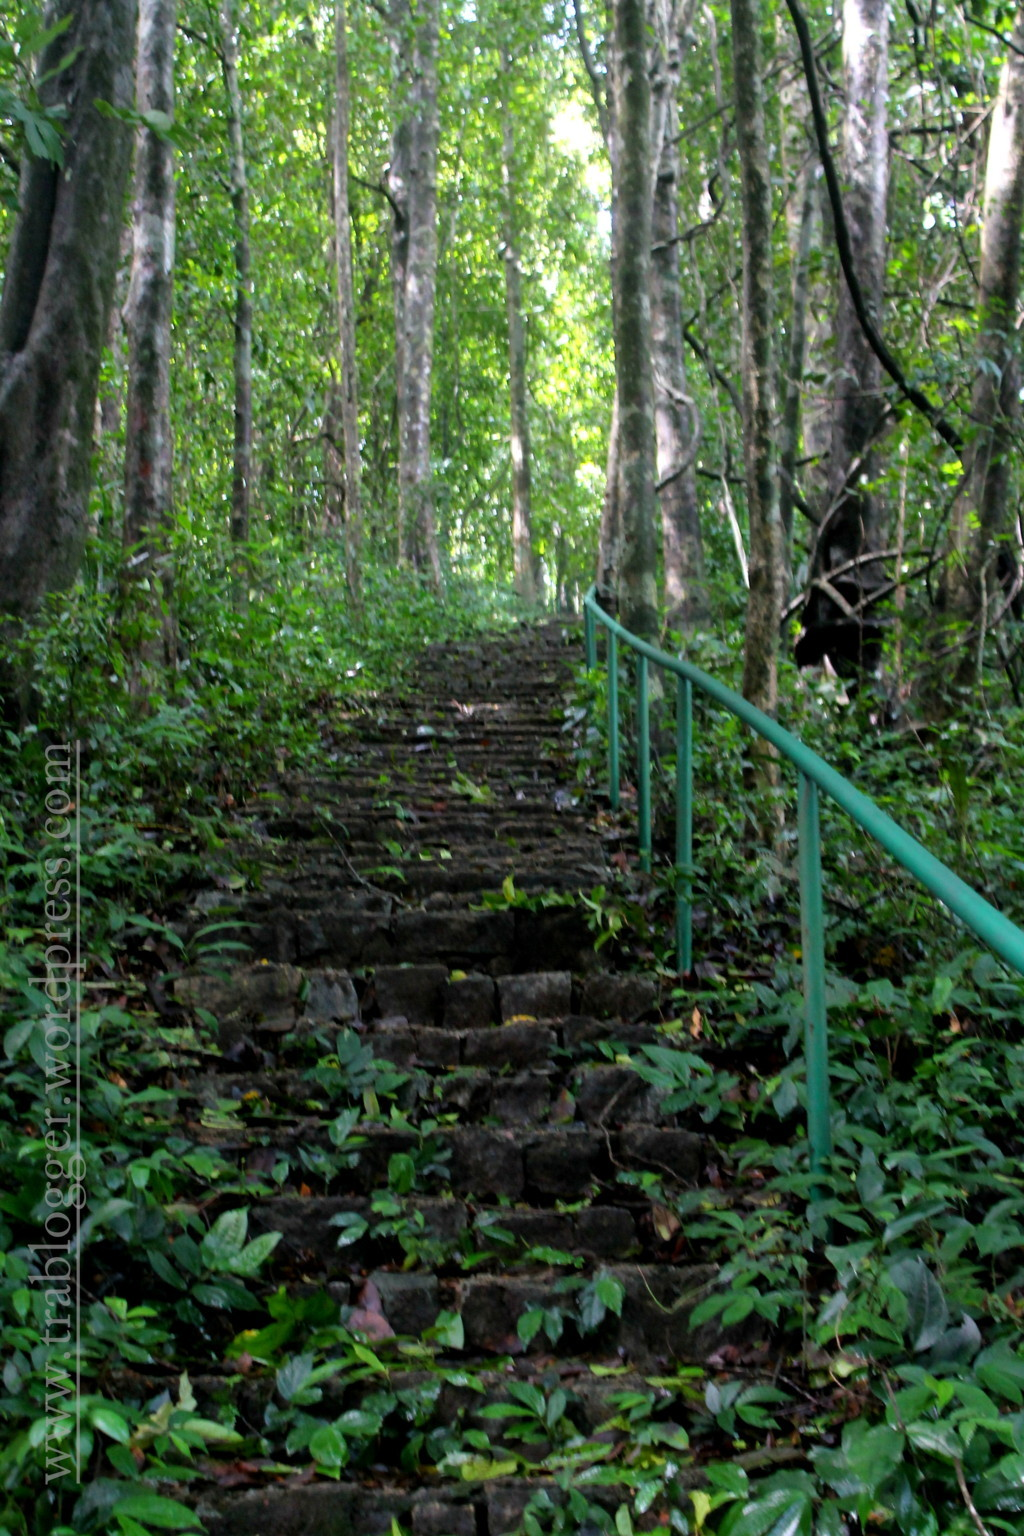 Steep steps leading to infinity, again!